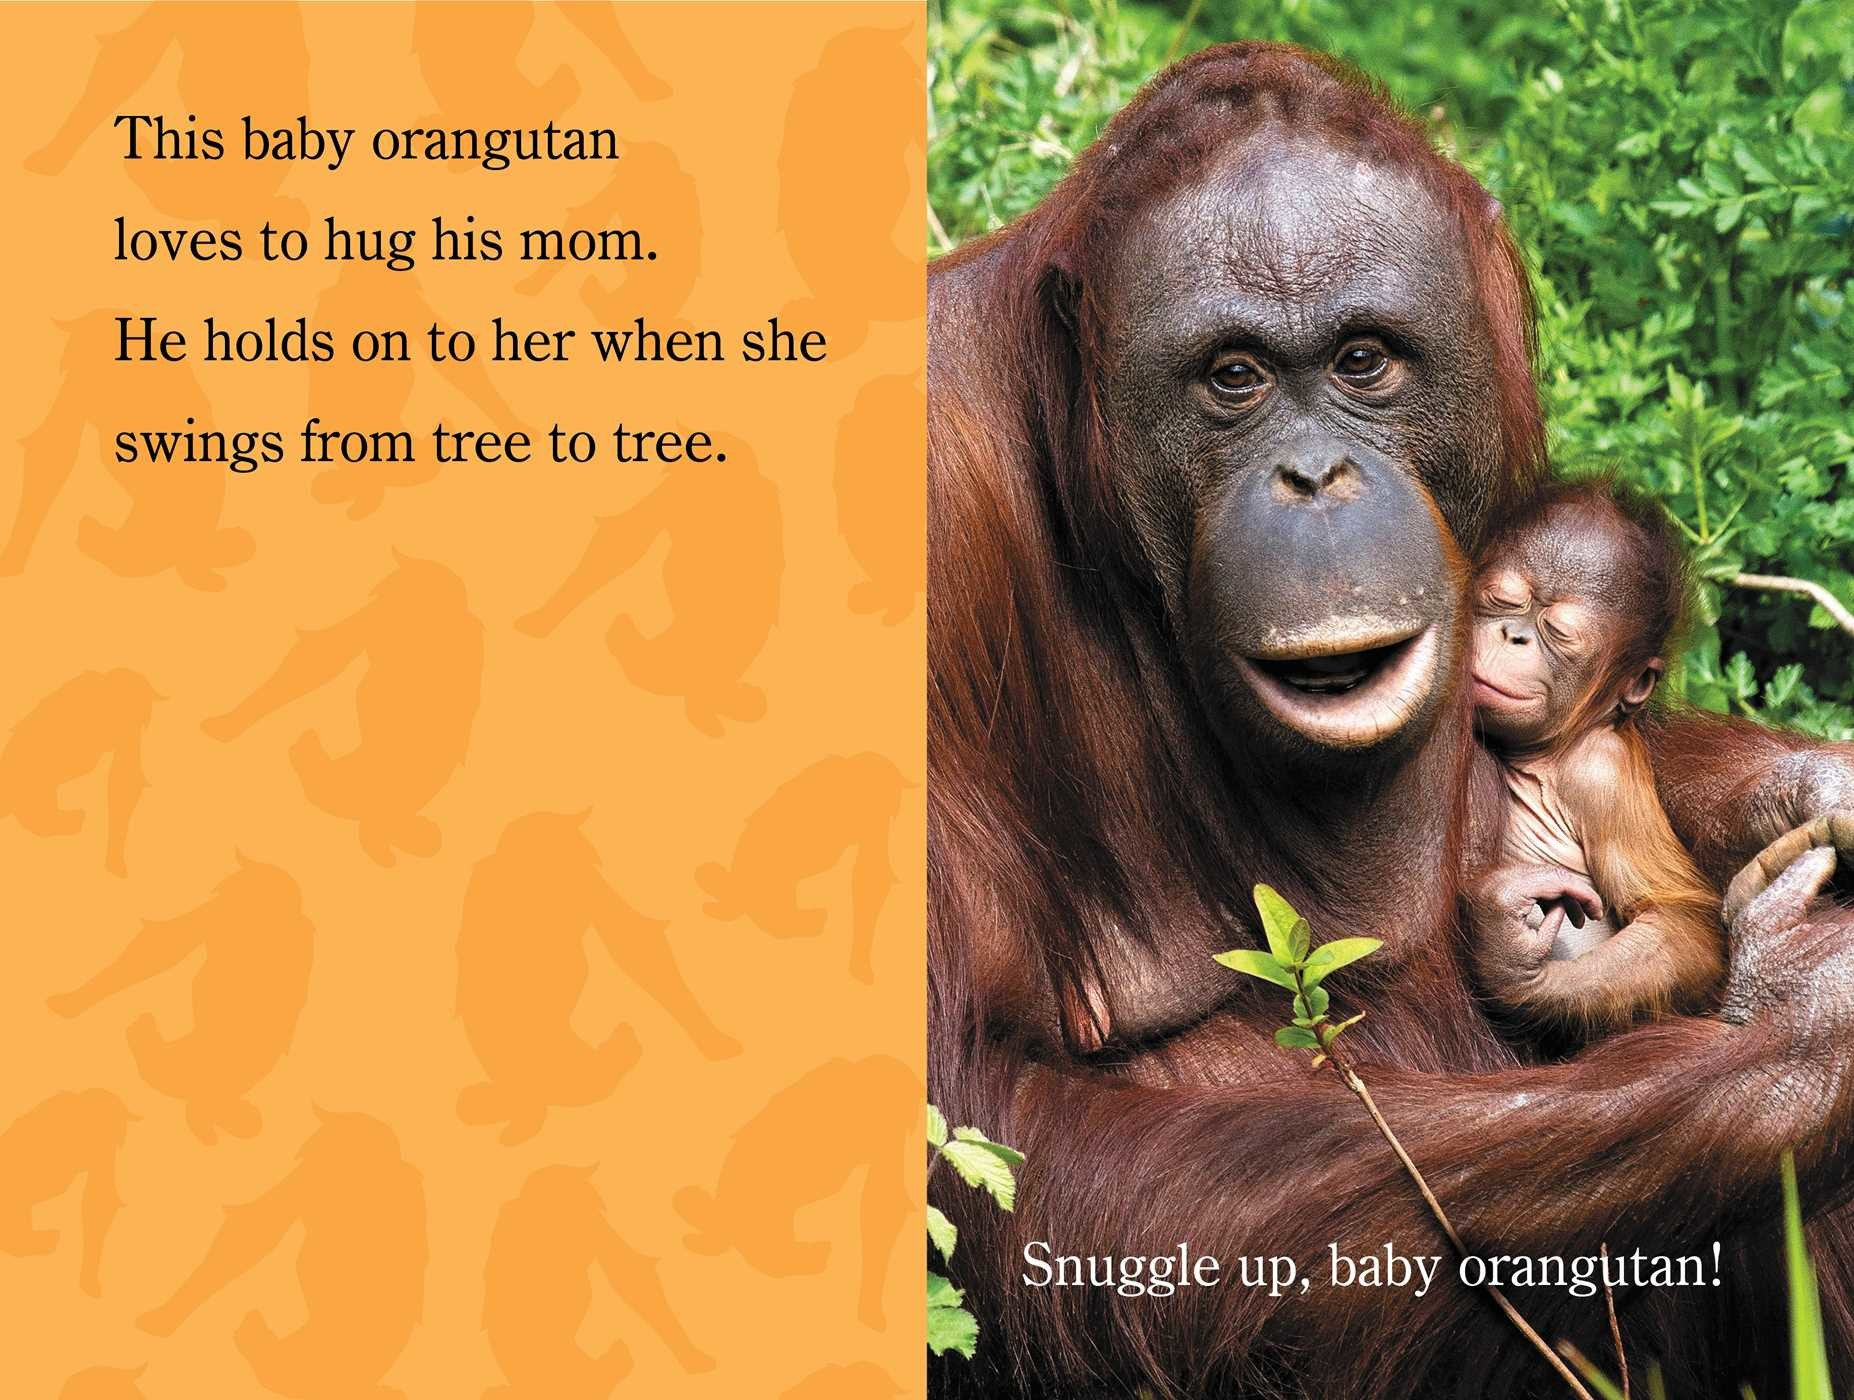 Snuggle up zooborns 9781481431002.in05